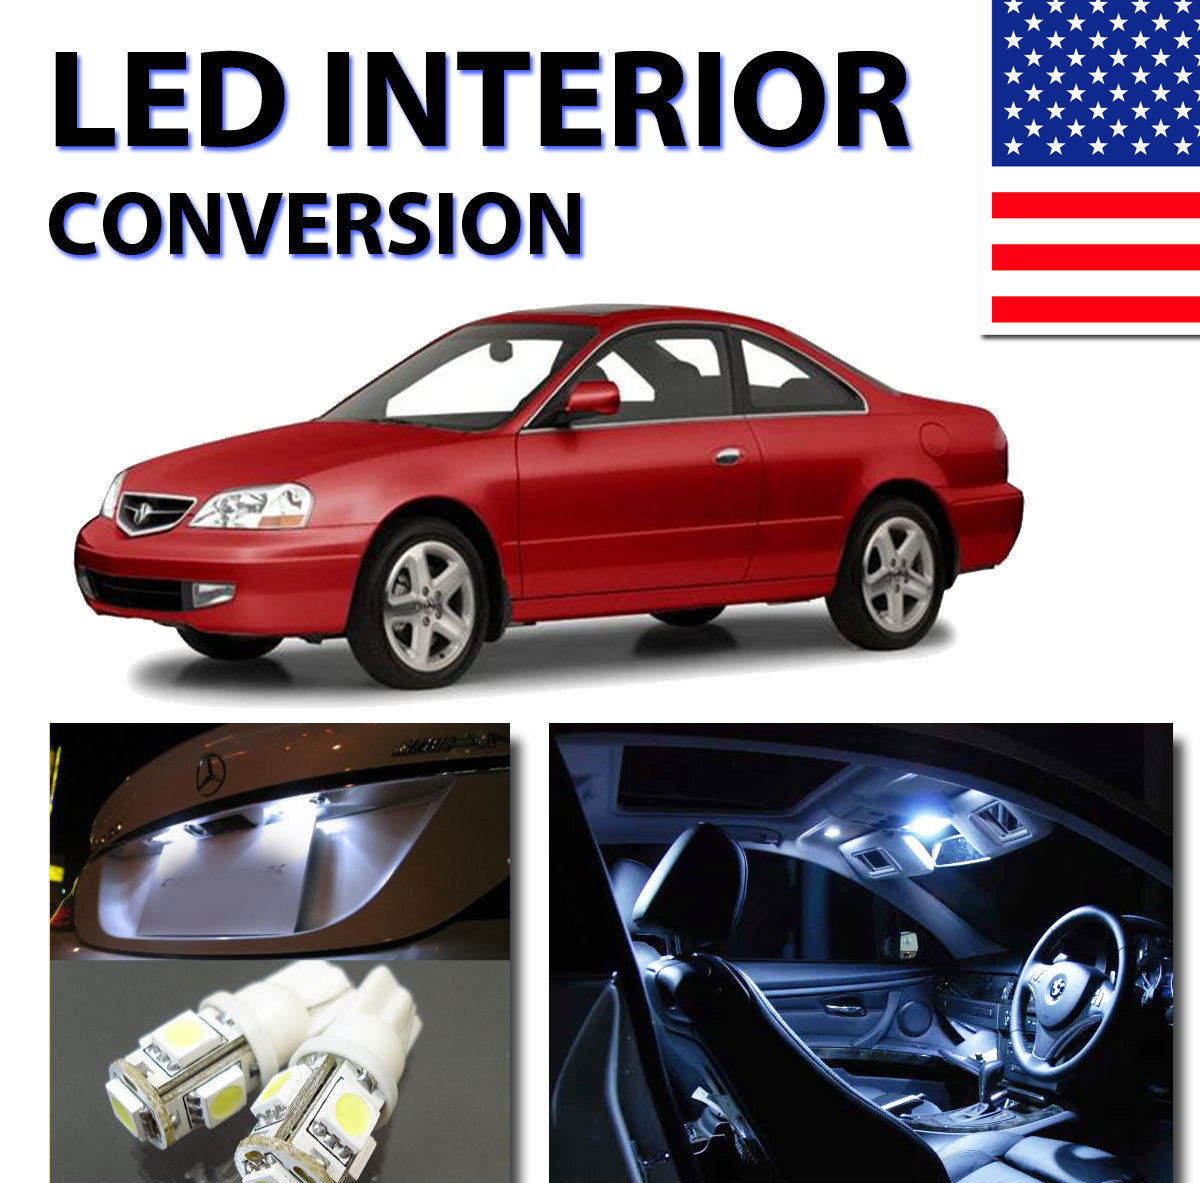 small resolution of led interior kit for acura cl 2001 2003 price 34 99 image 1